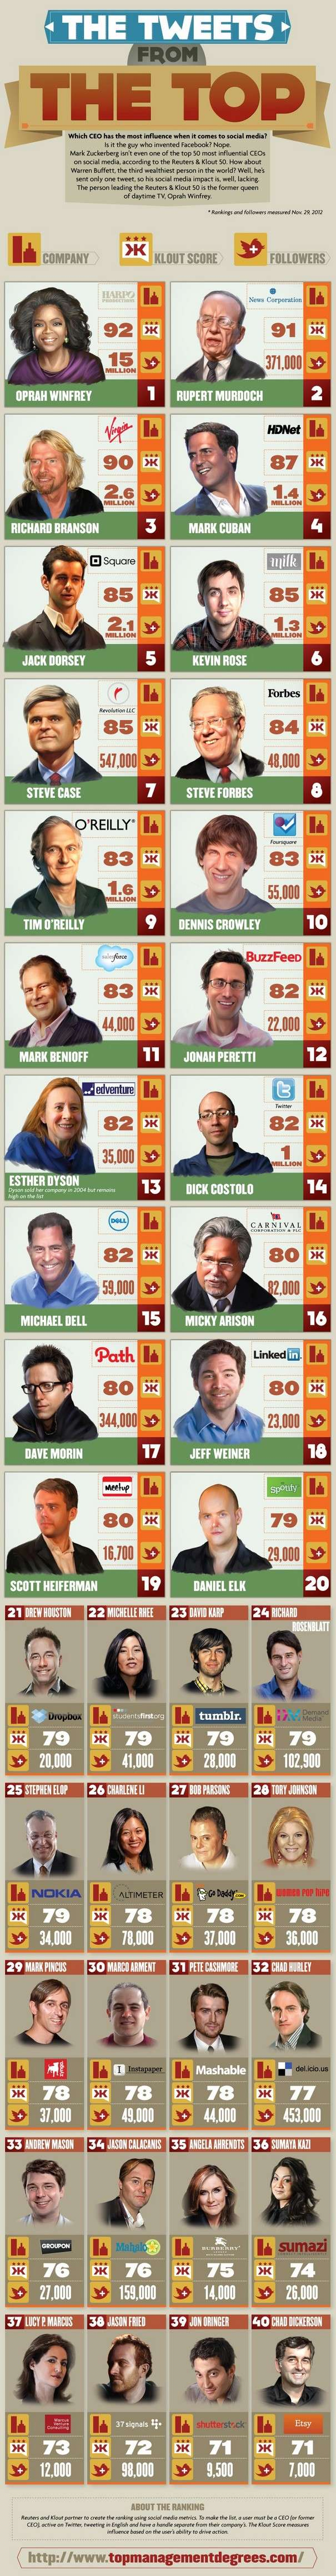 Social CEOS Infographic2